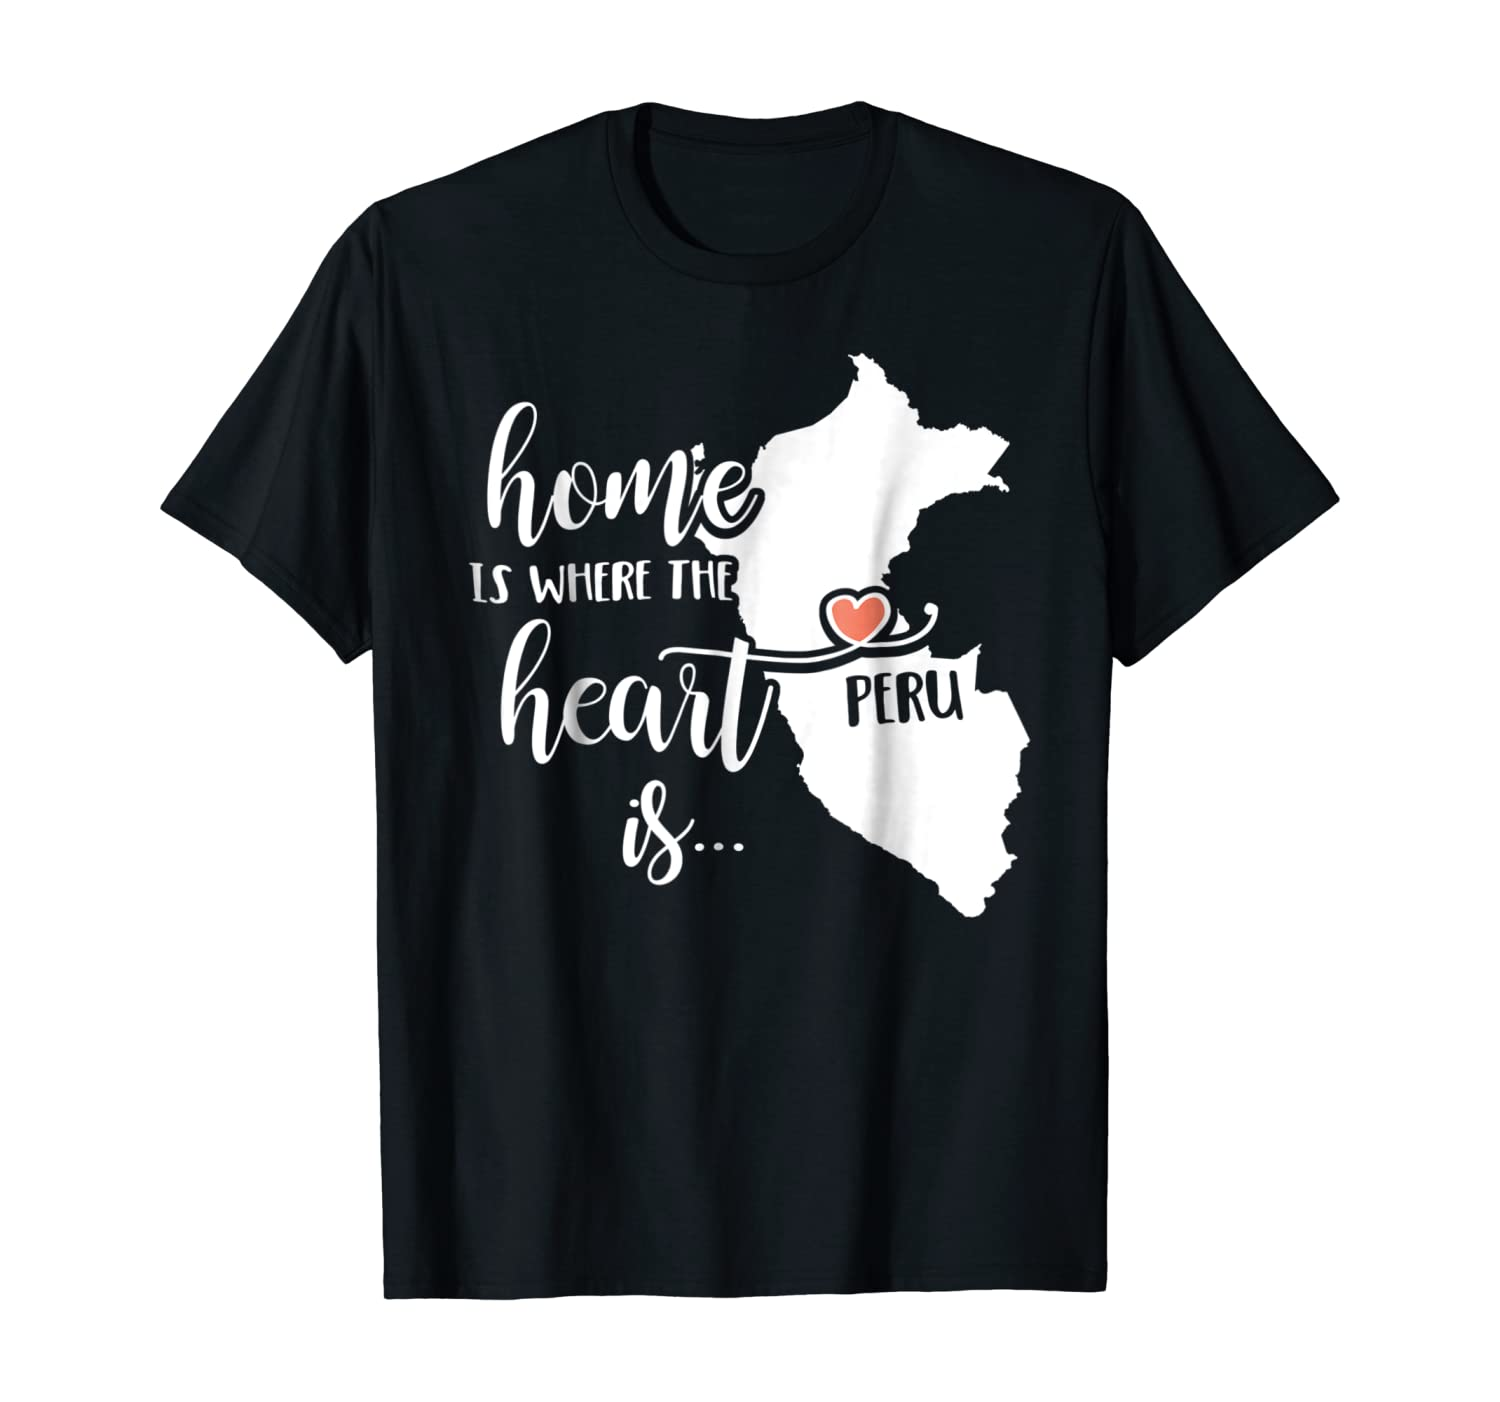 Peru T-Shirt - Home is Where the Heart Is!